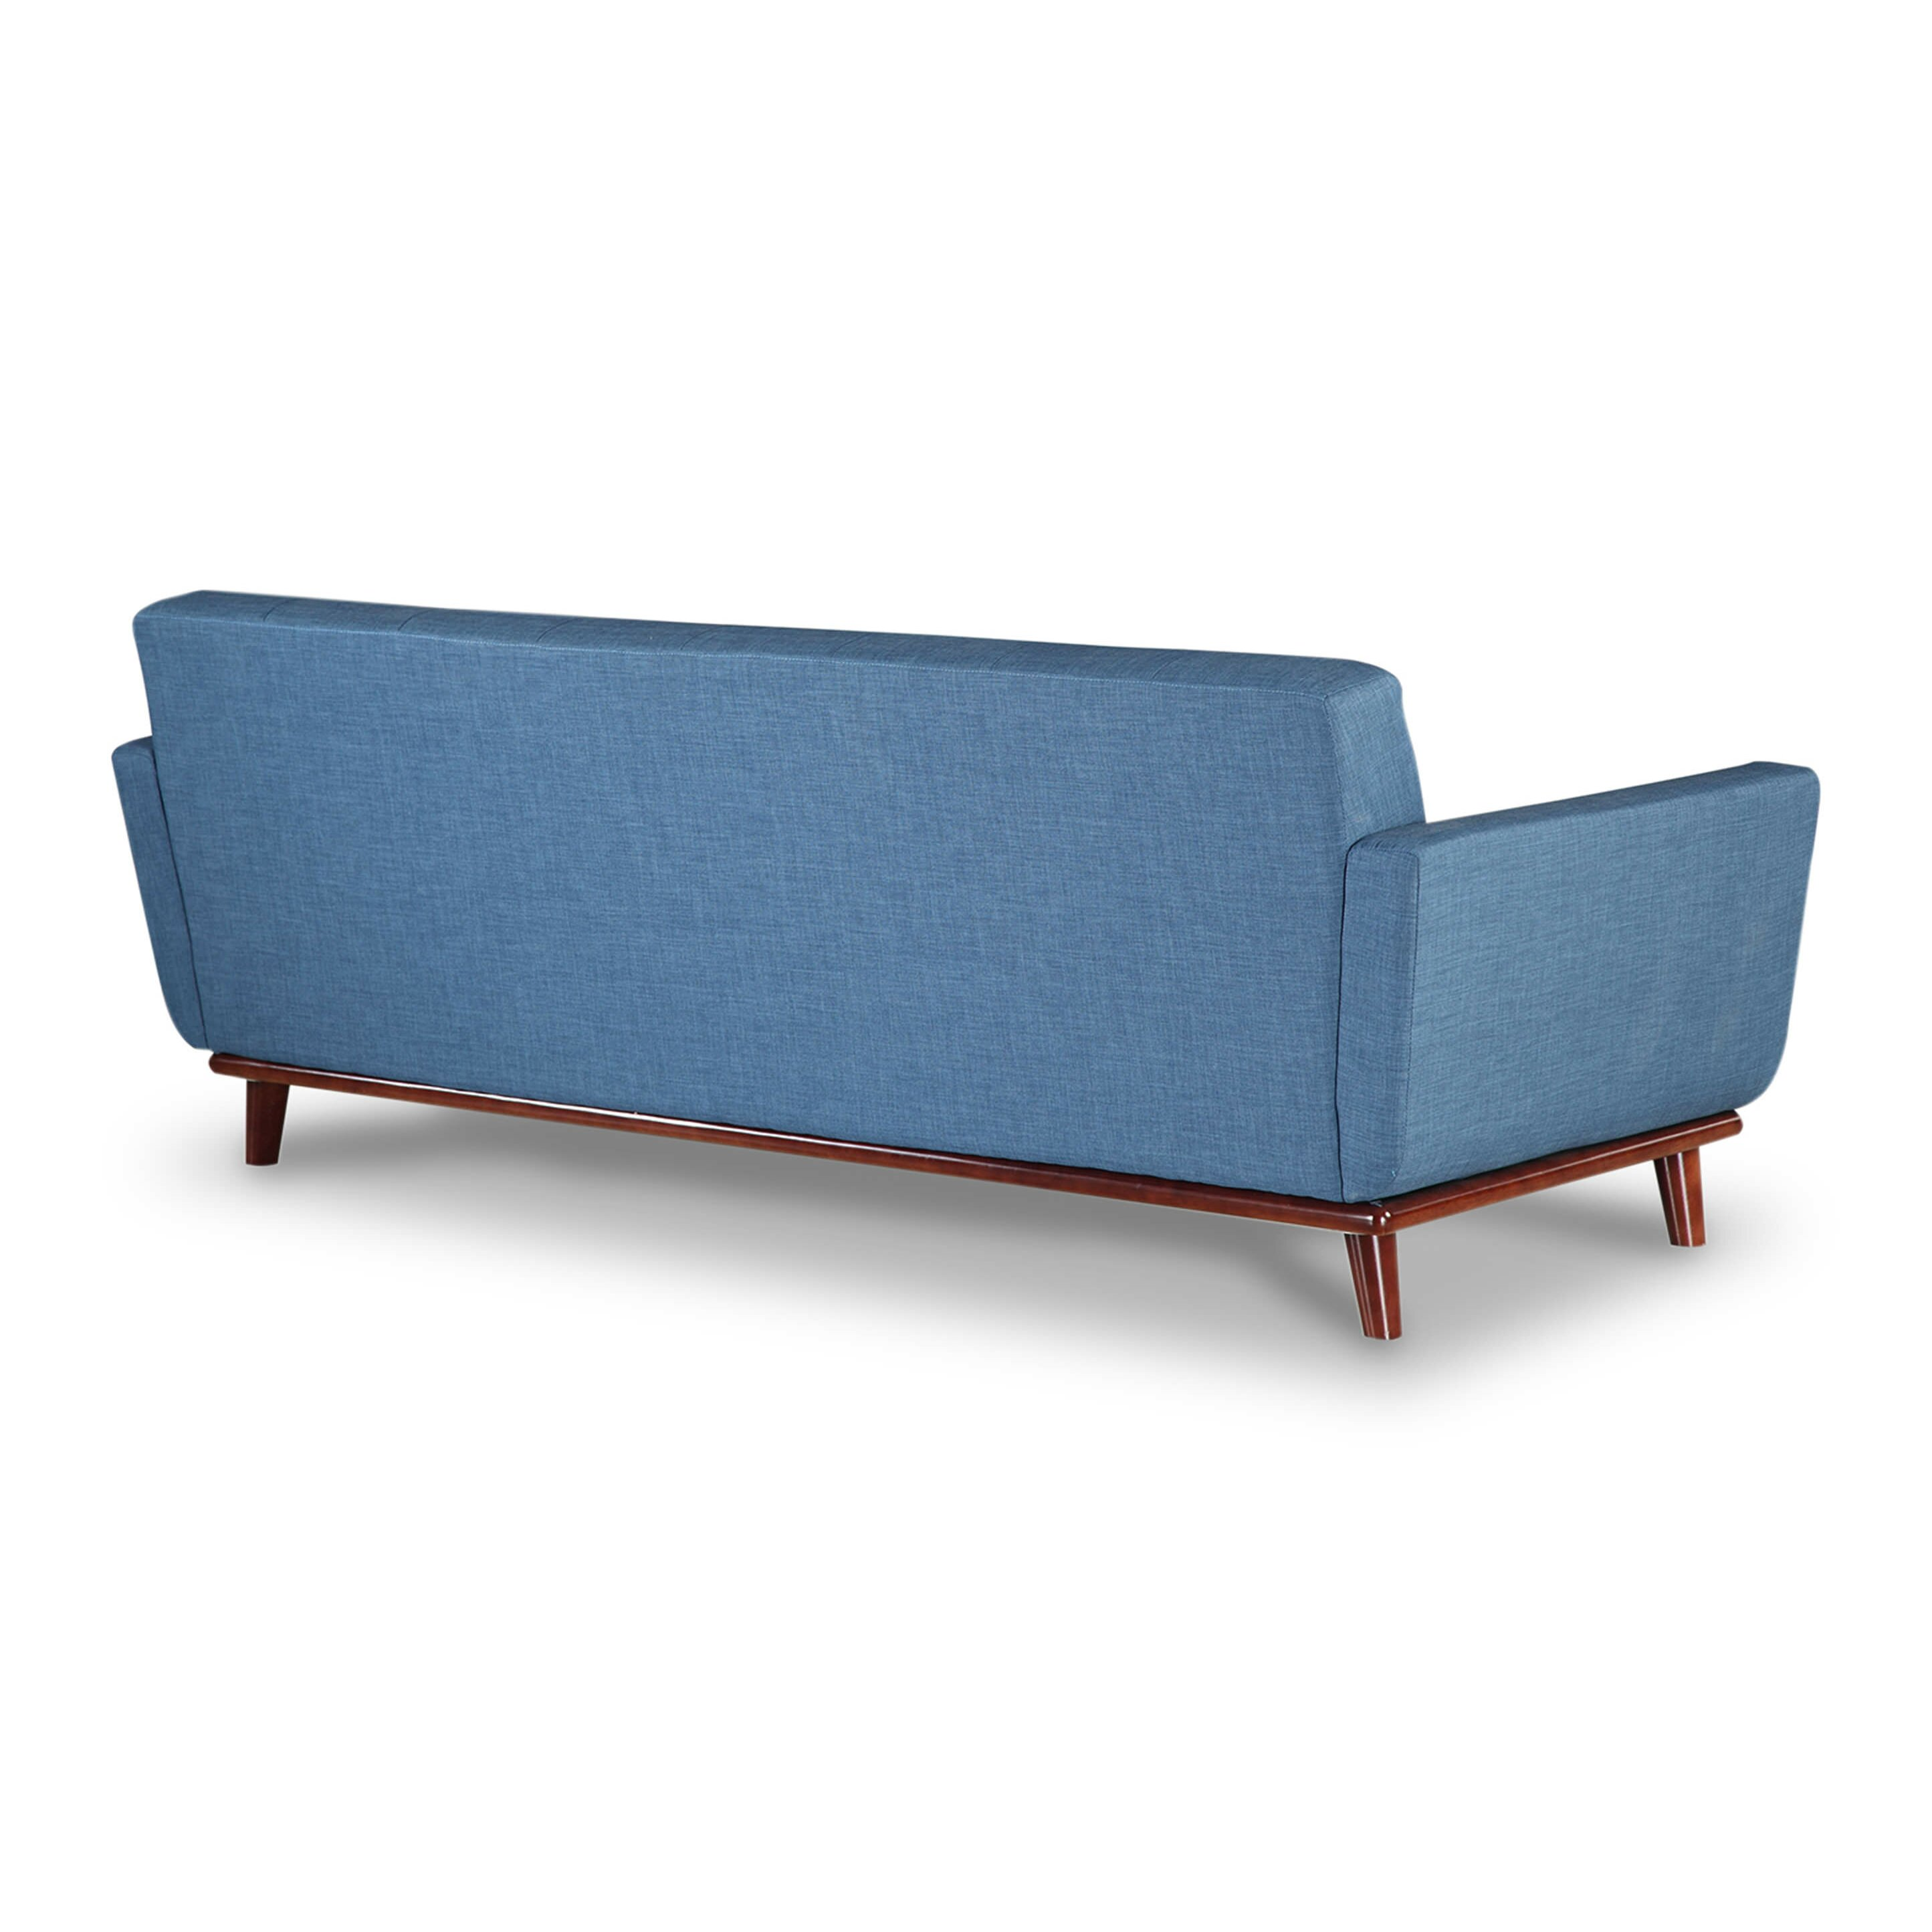 Kardiel Jackie Mid Century Modern Vintage Sofa & Reviews ... However, kardiel also looks to scandinavian designs and contemporary modern styles to craft their pieces.